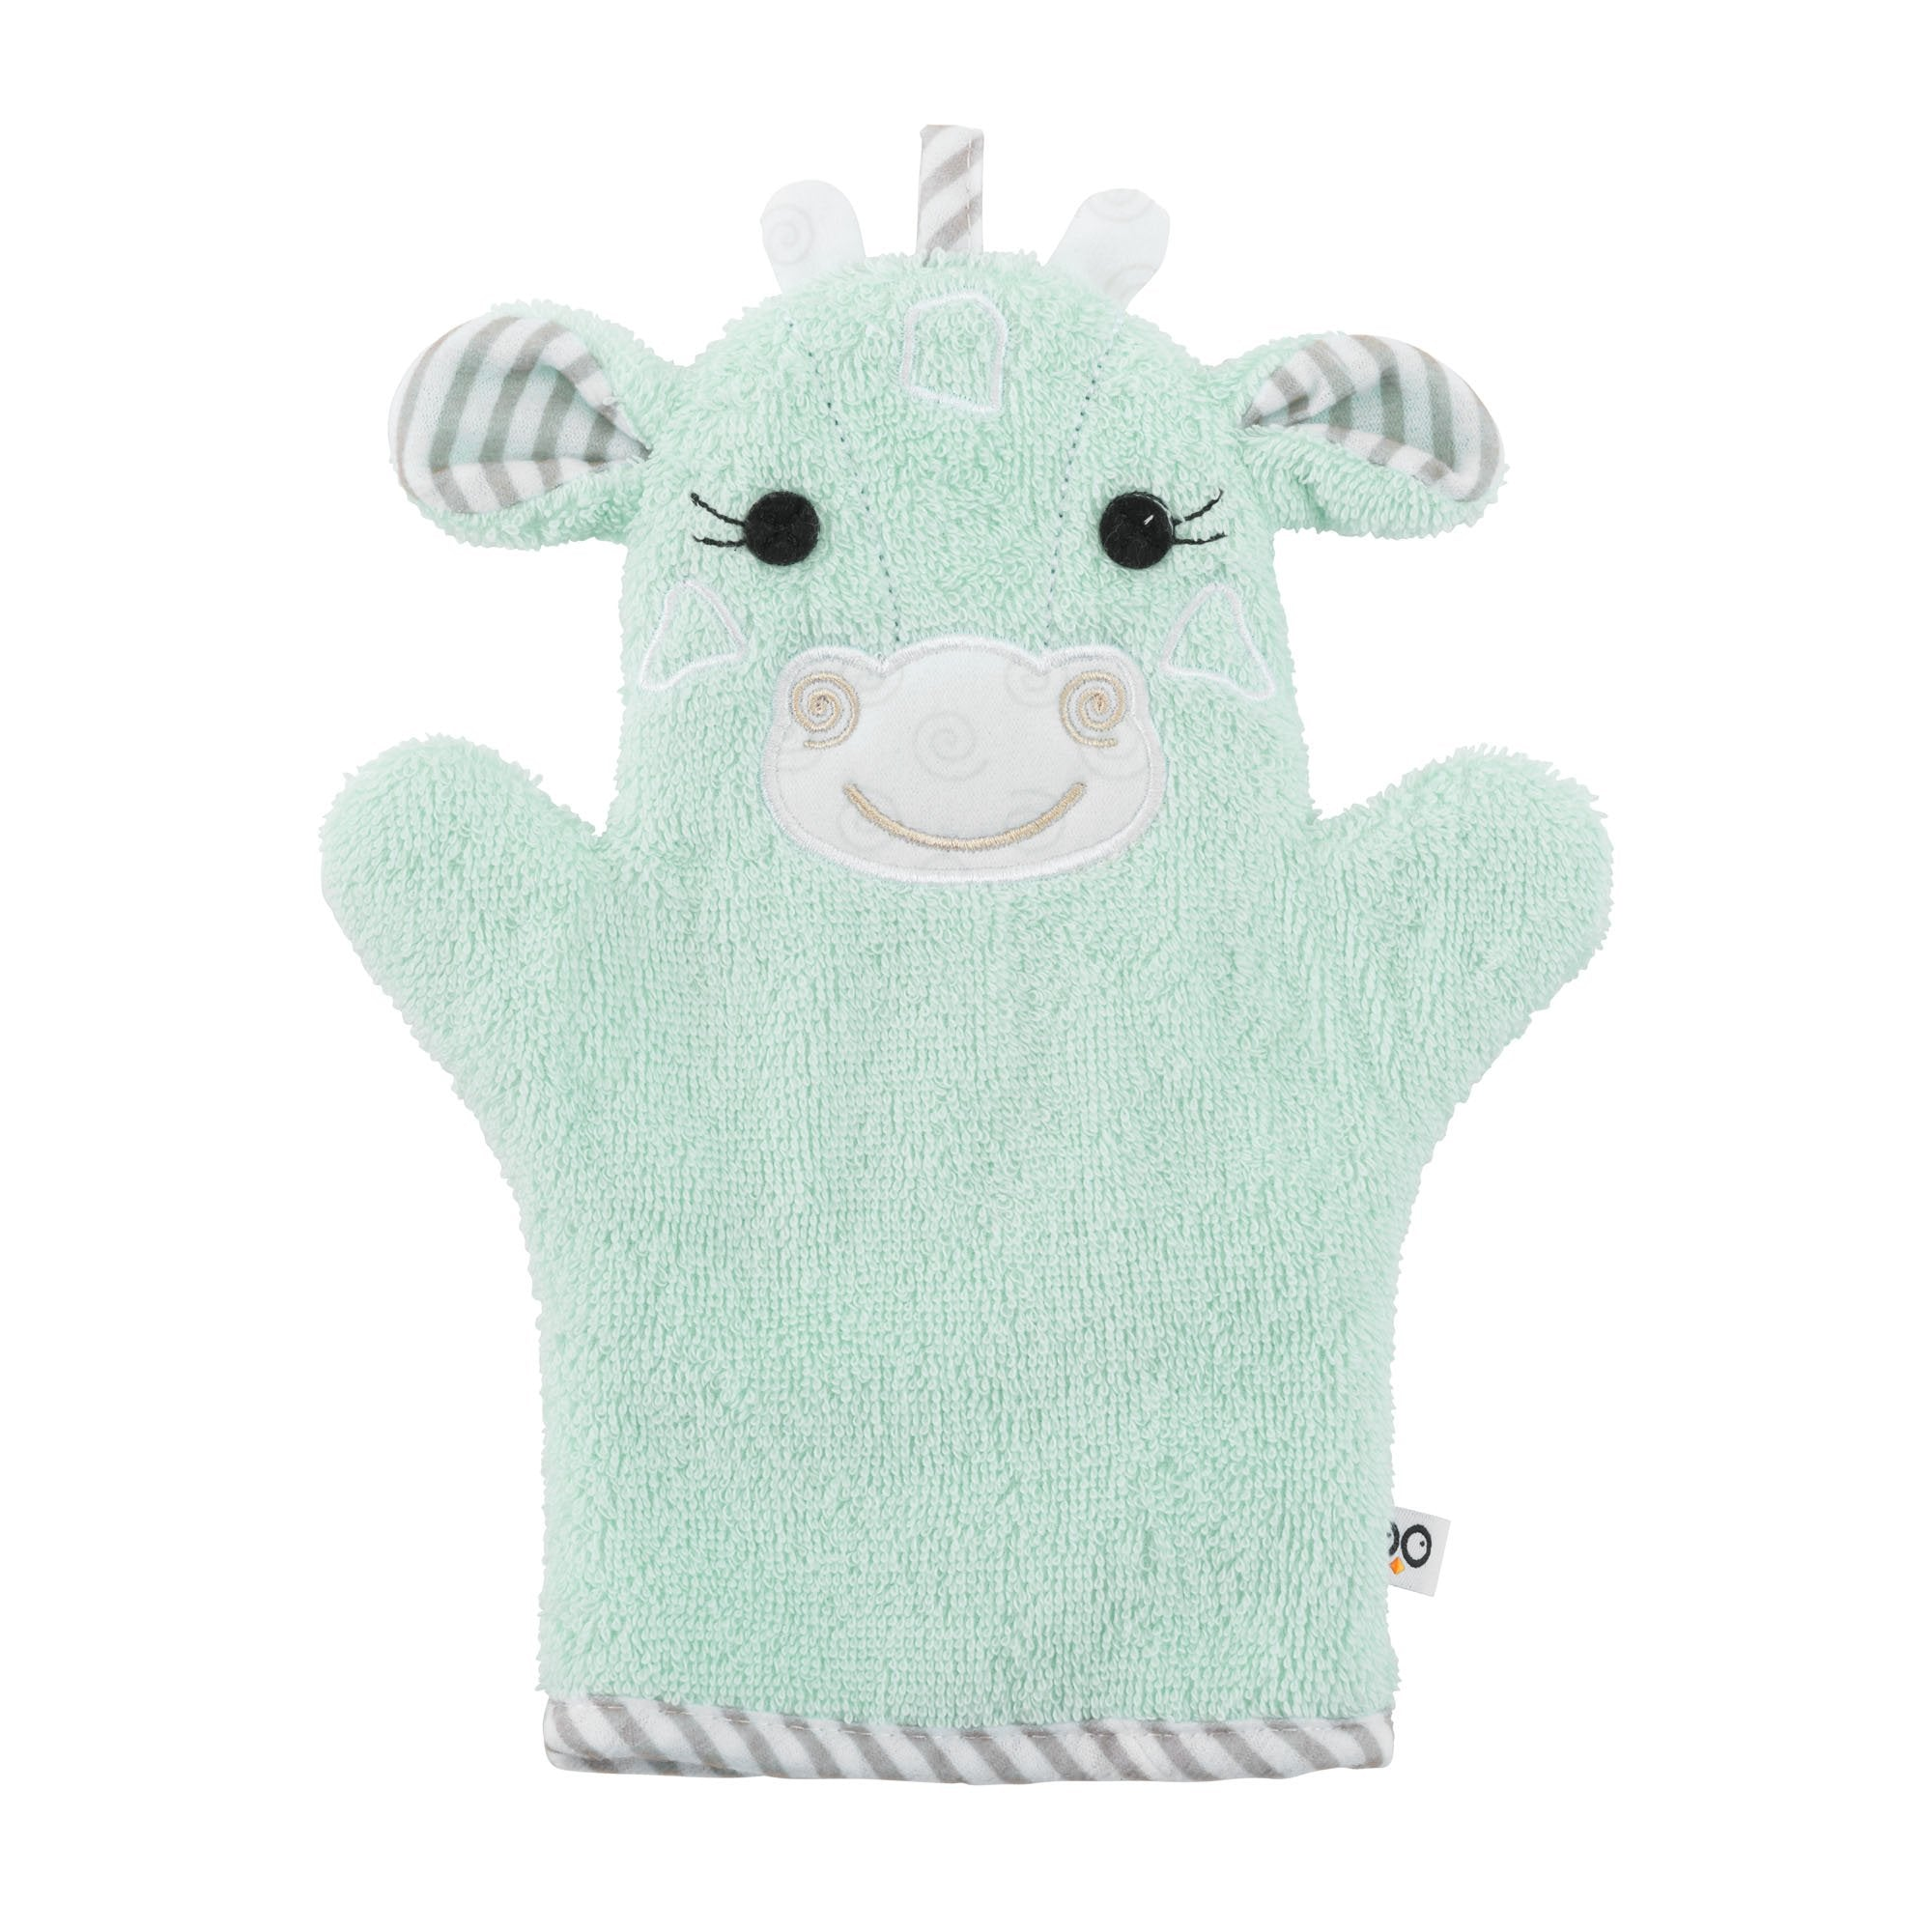 ZOOCCHINI Baby Snow Terry Bath Mitt - Jaime the Giraffe